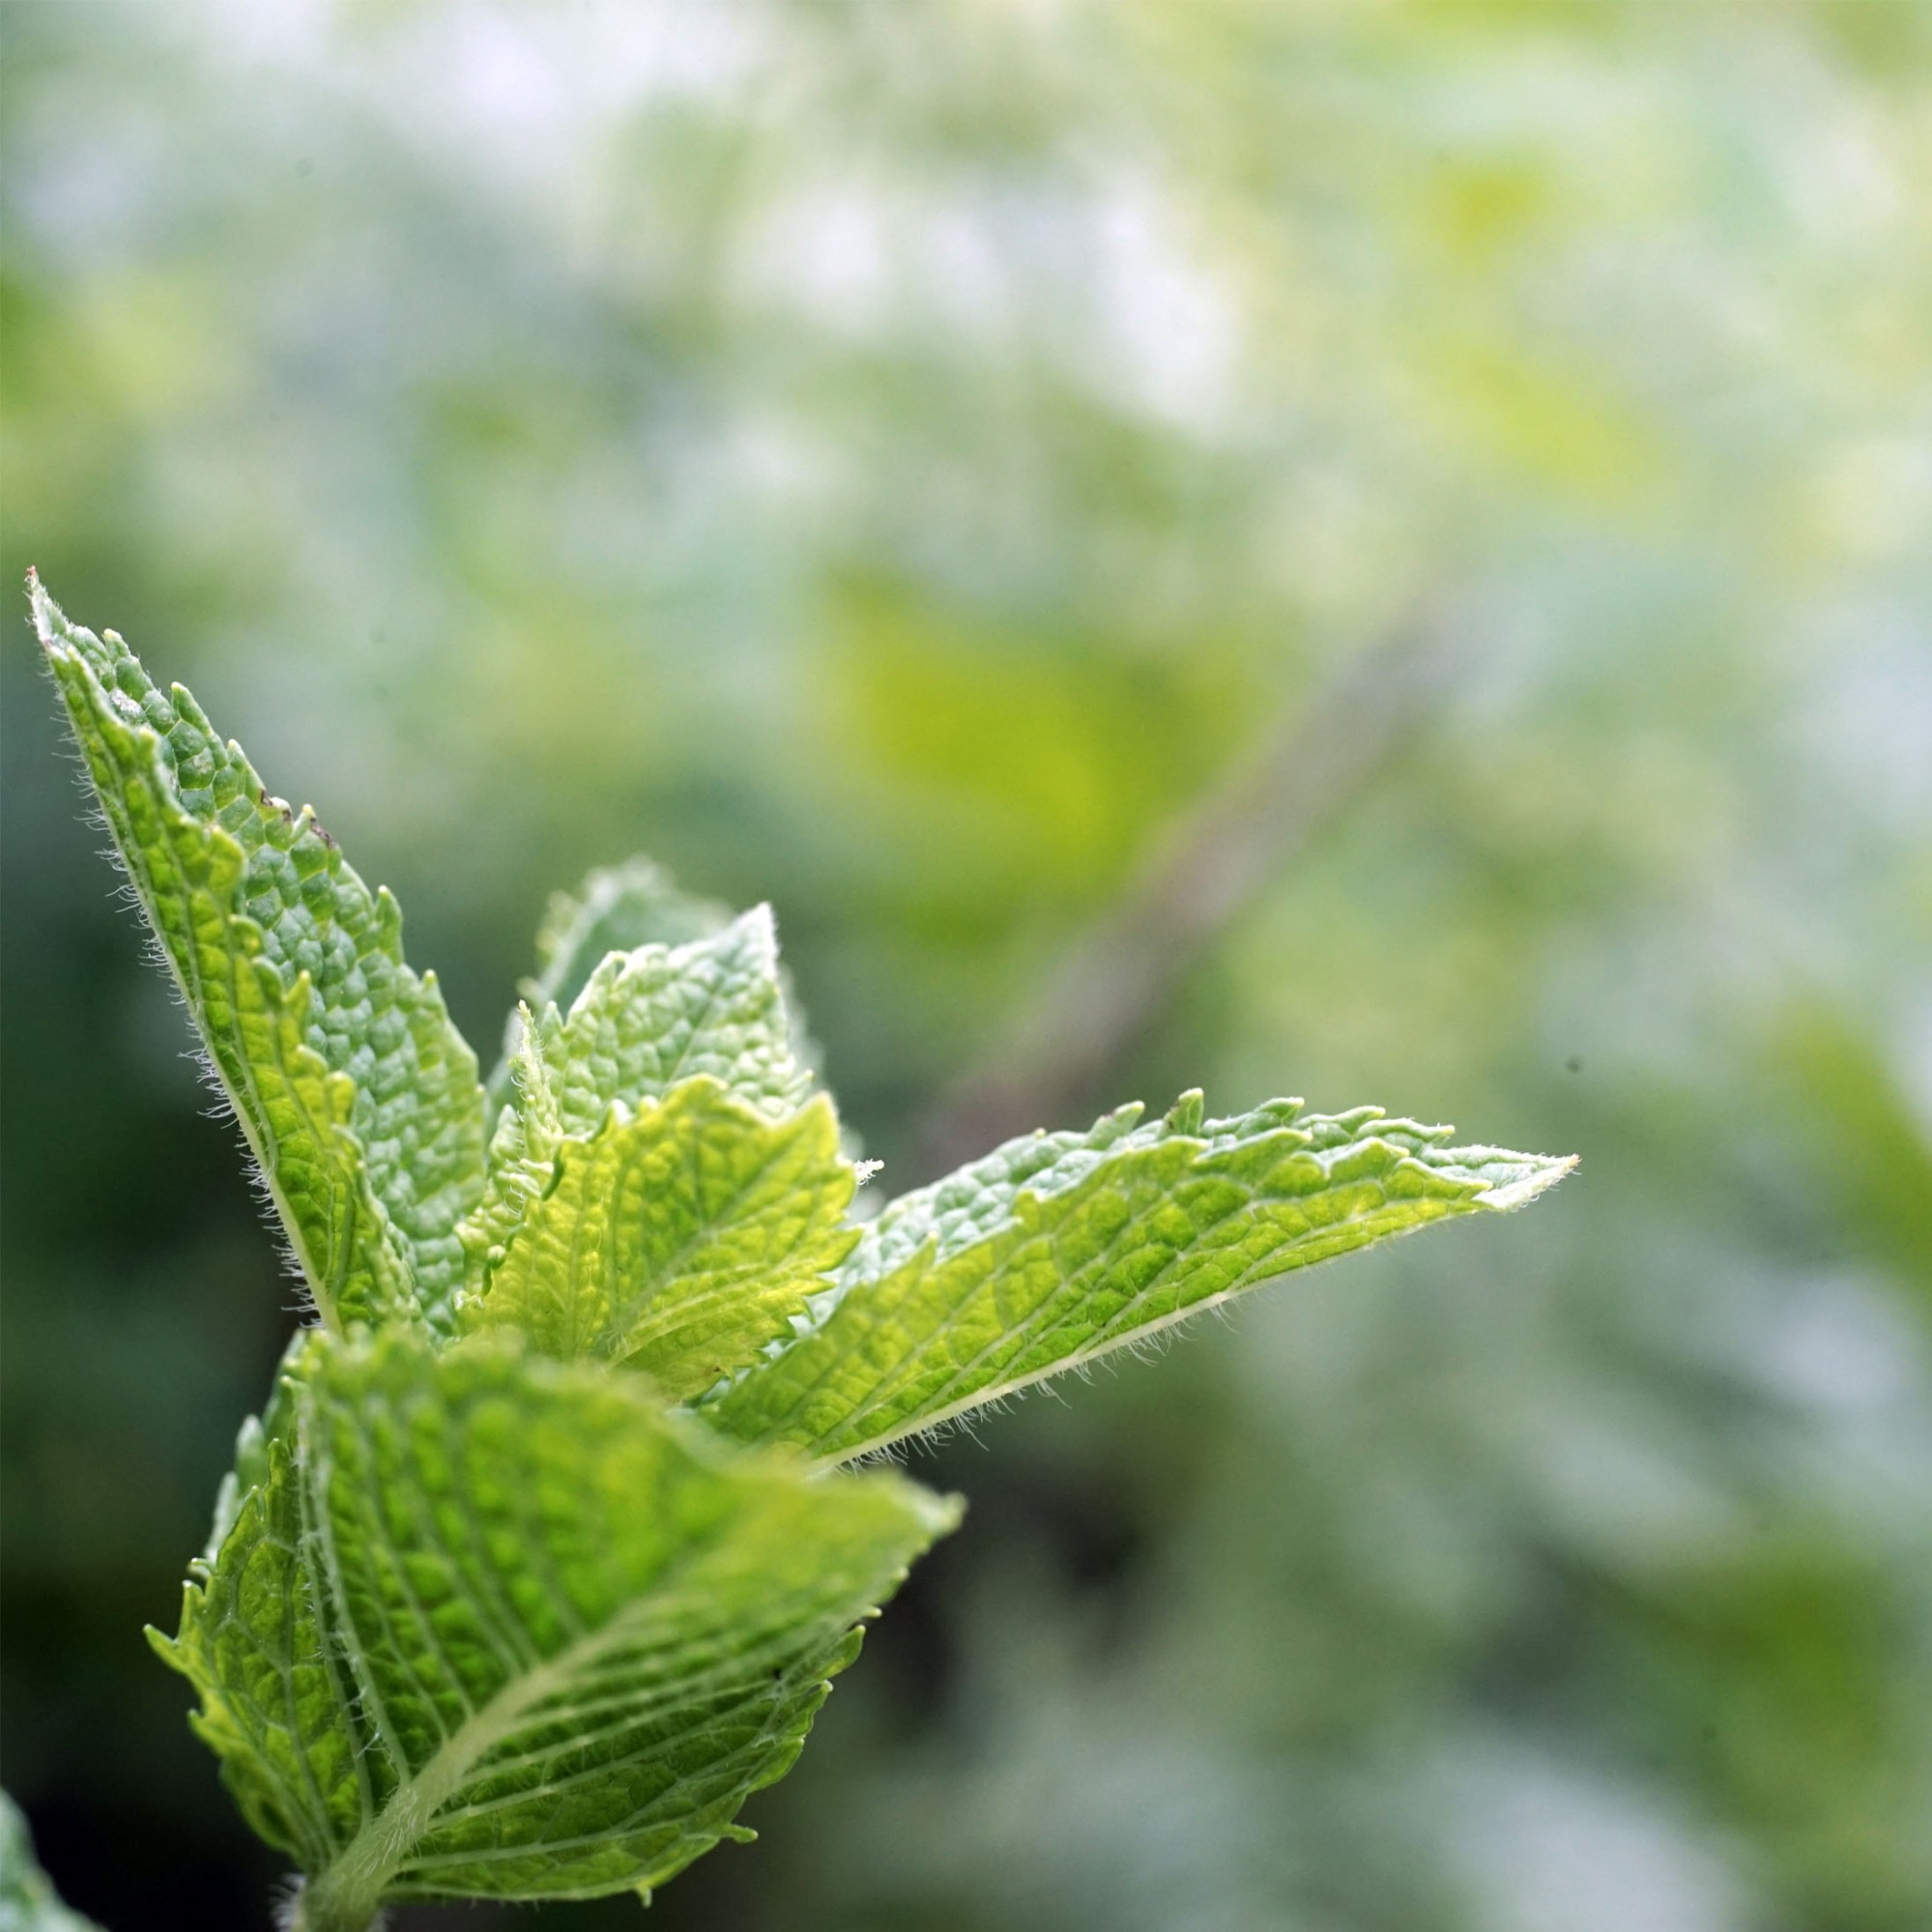 https://pixabay.com/en/peppermint-garden-green-leaves-2326541/